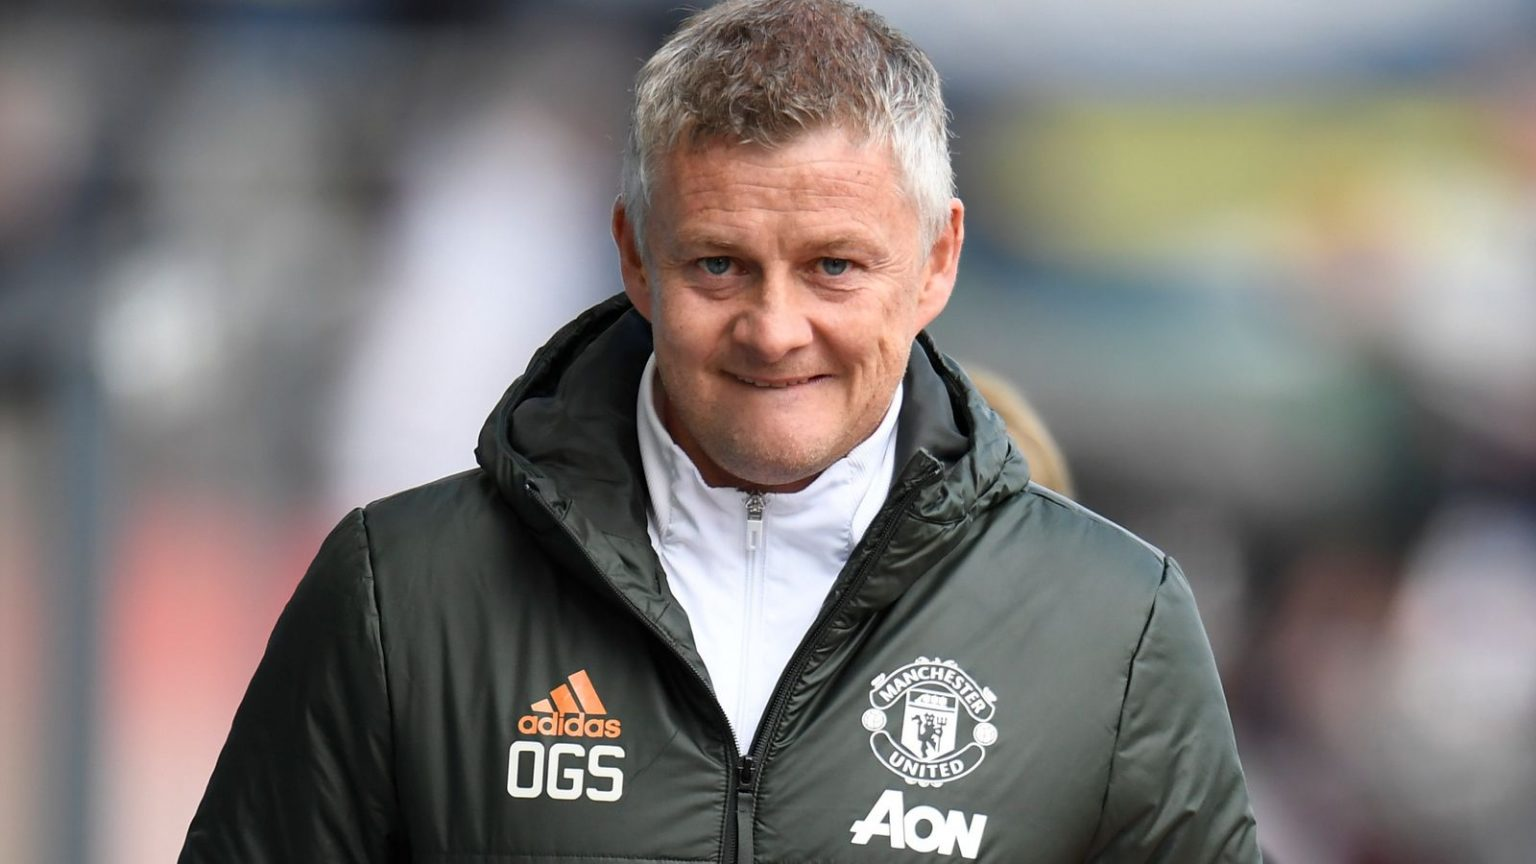 Fulham vs Manchester United prediction: How will Premier